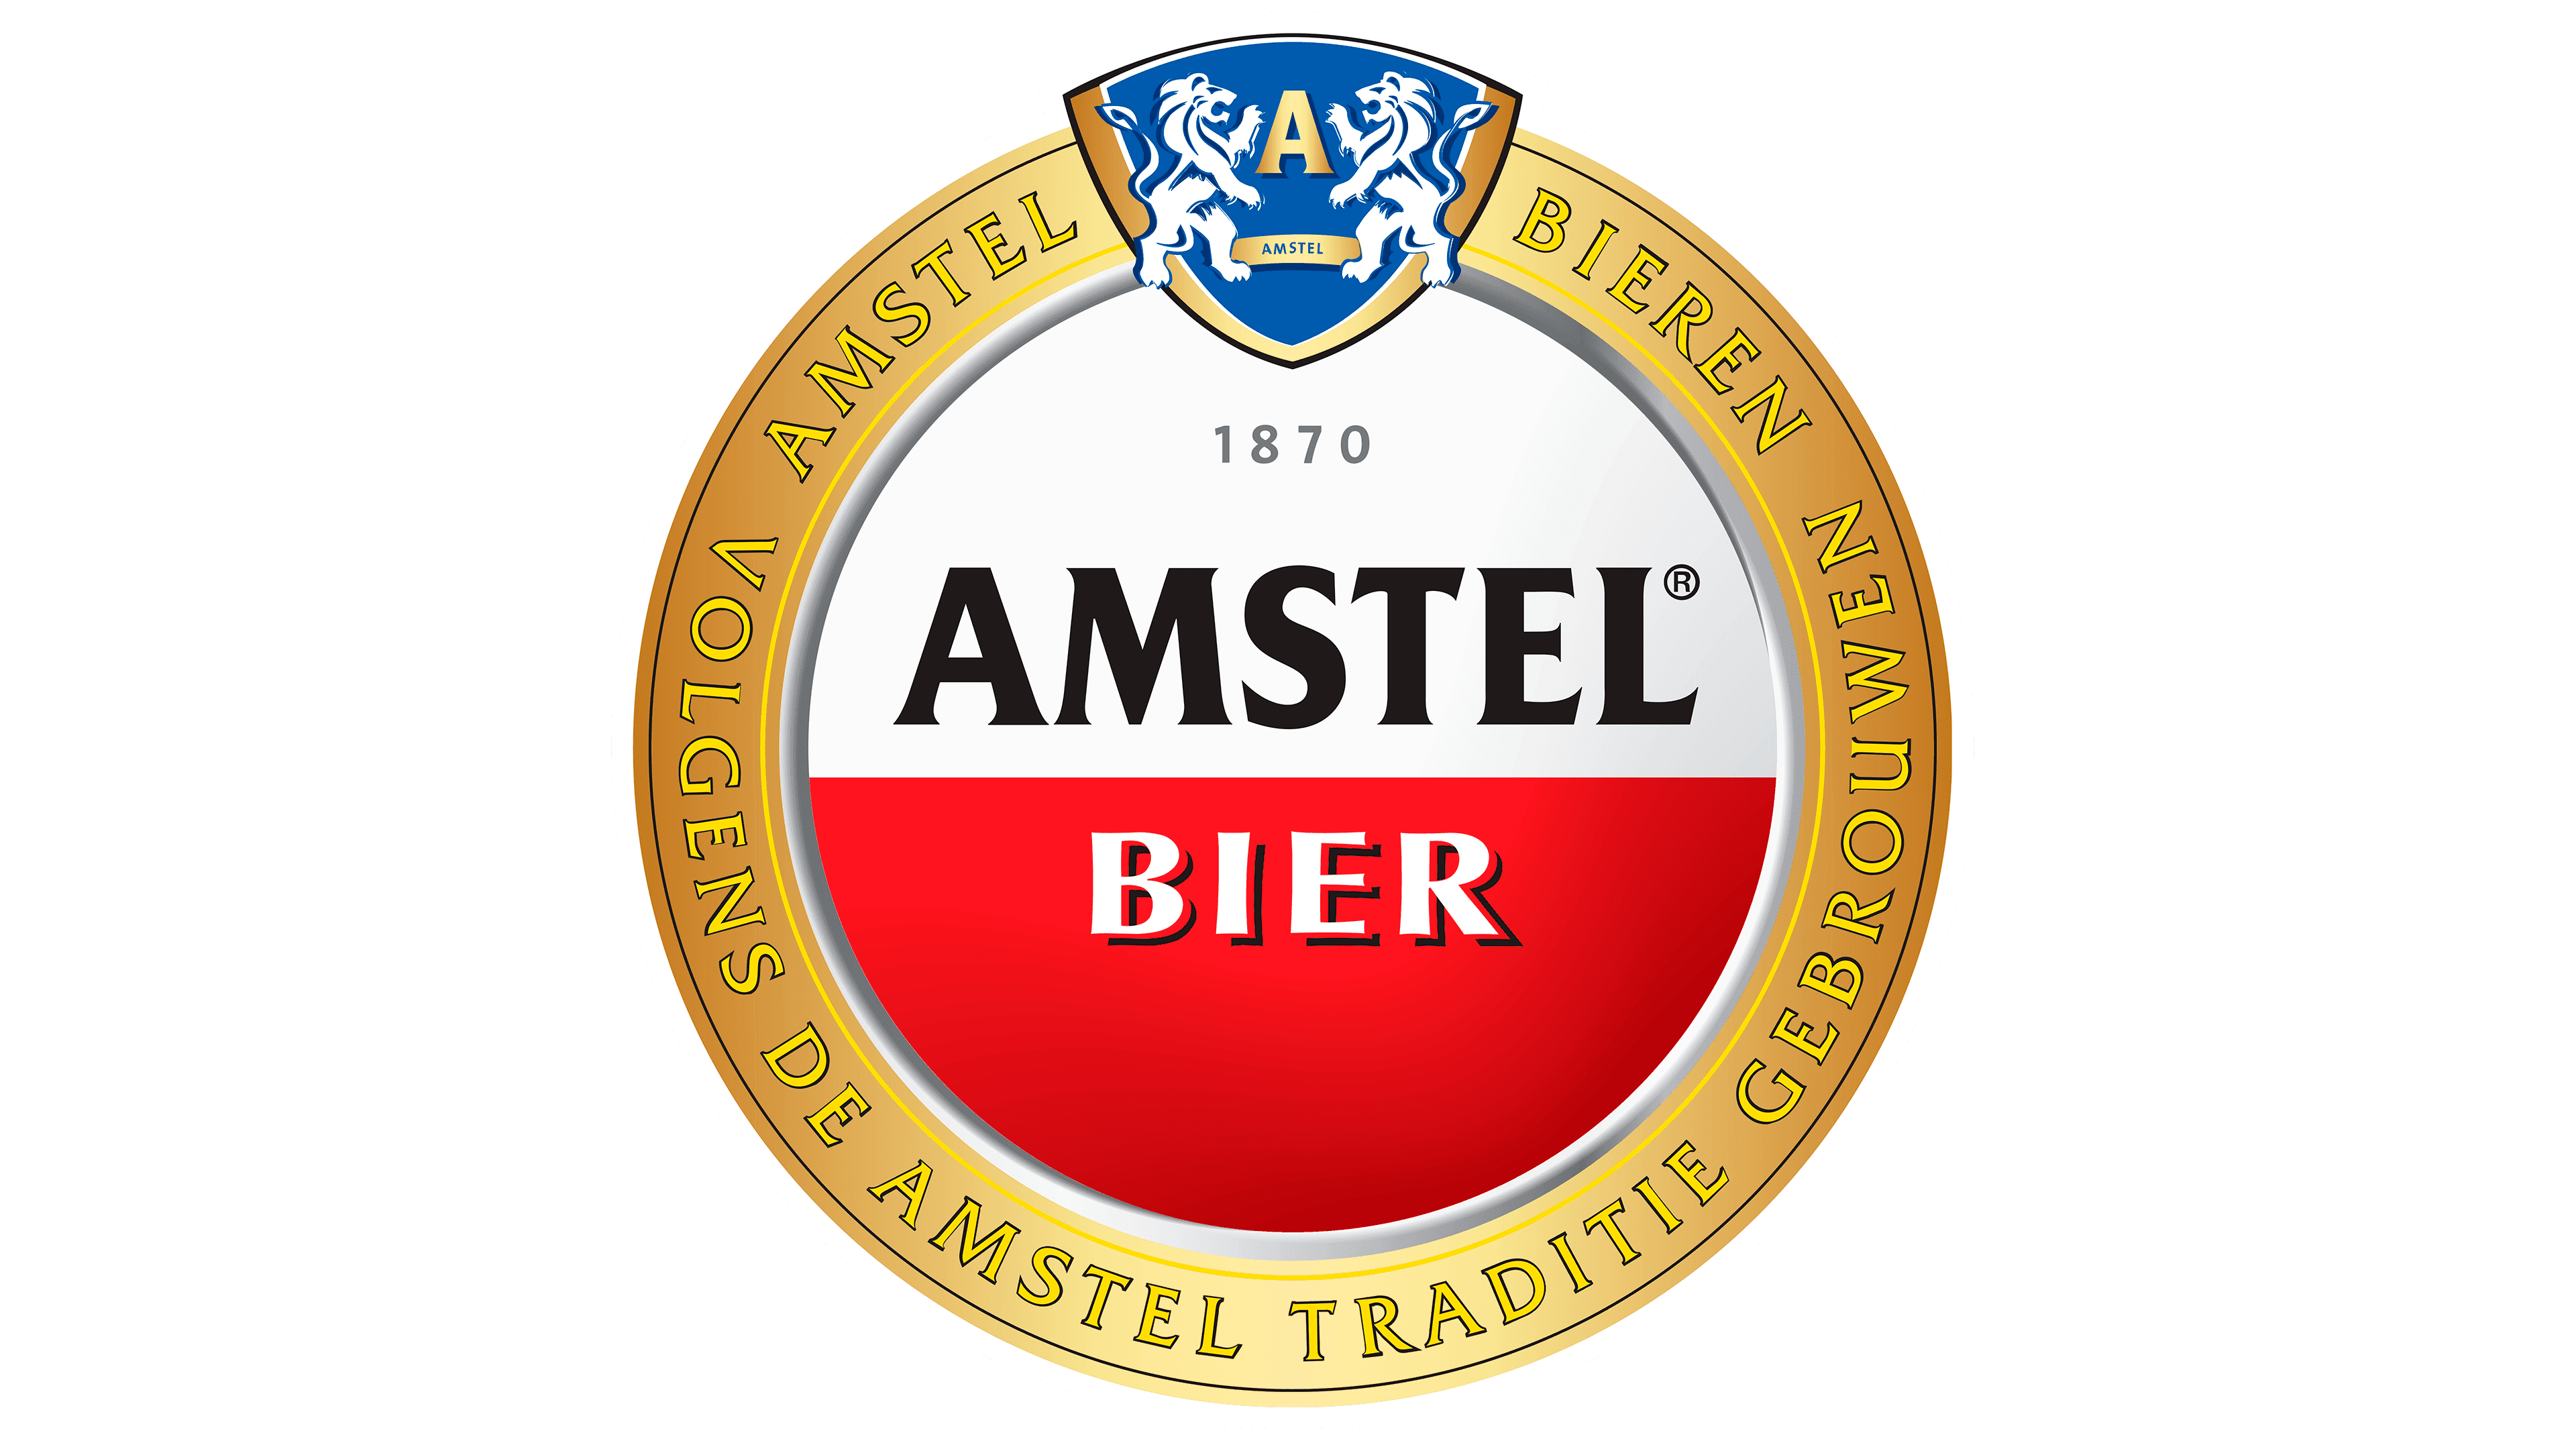 Amstel Logo The Most Famous Brands And Company Logos In The World